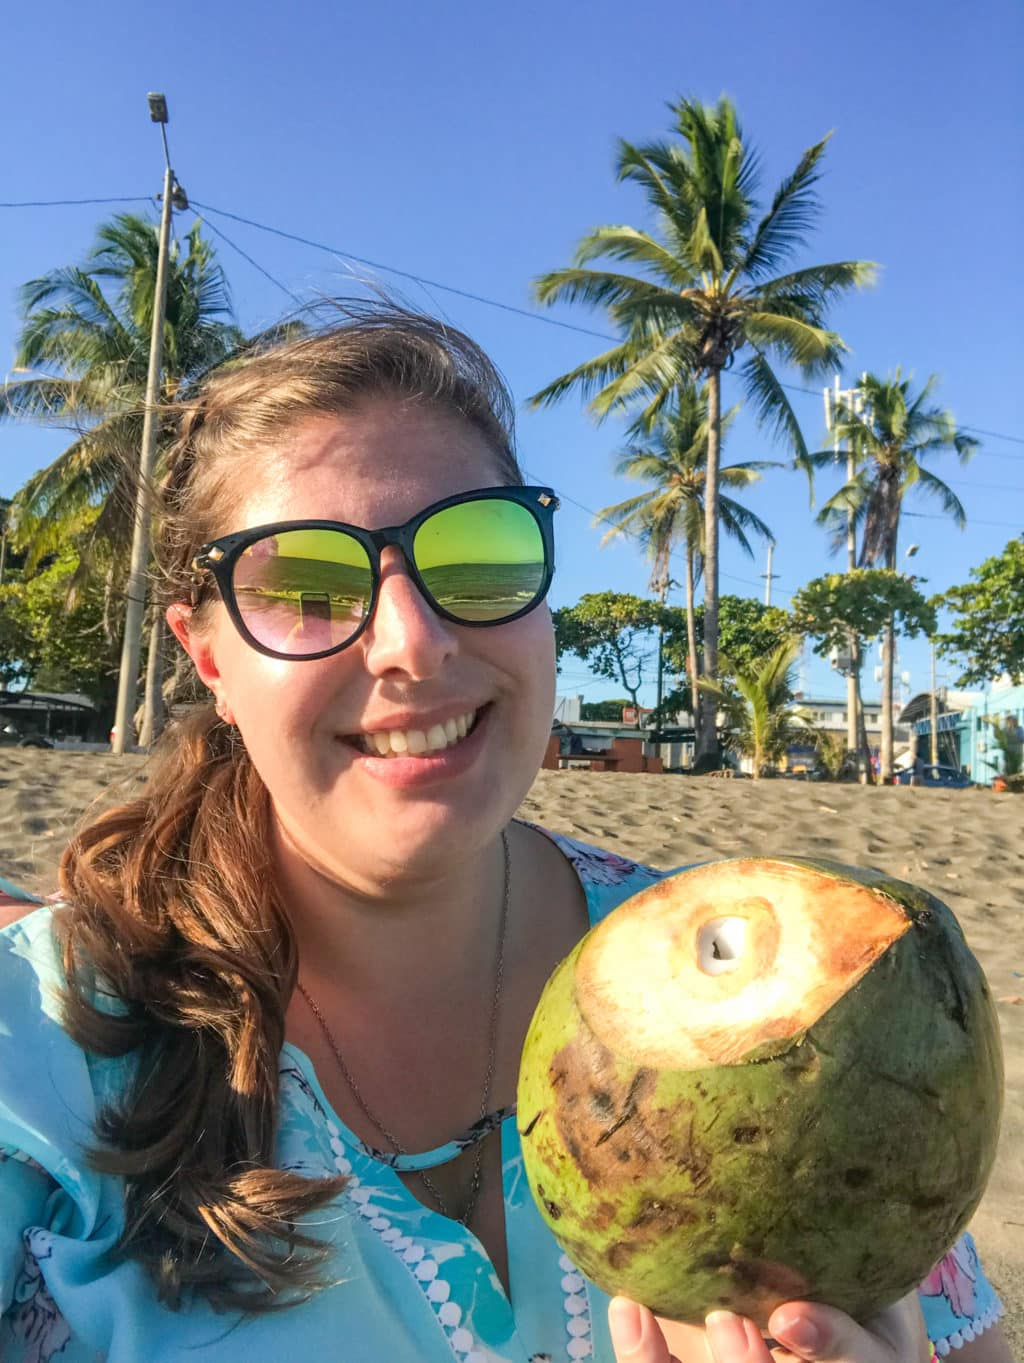 Holding a coconut in Costa Rica